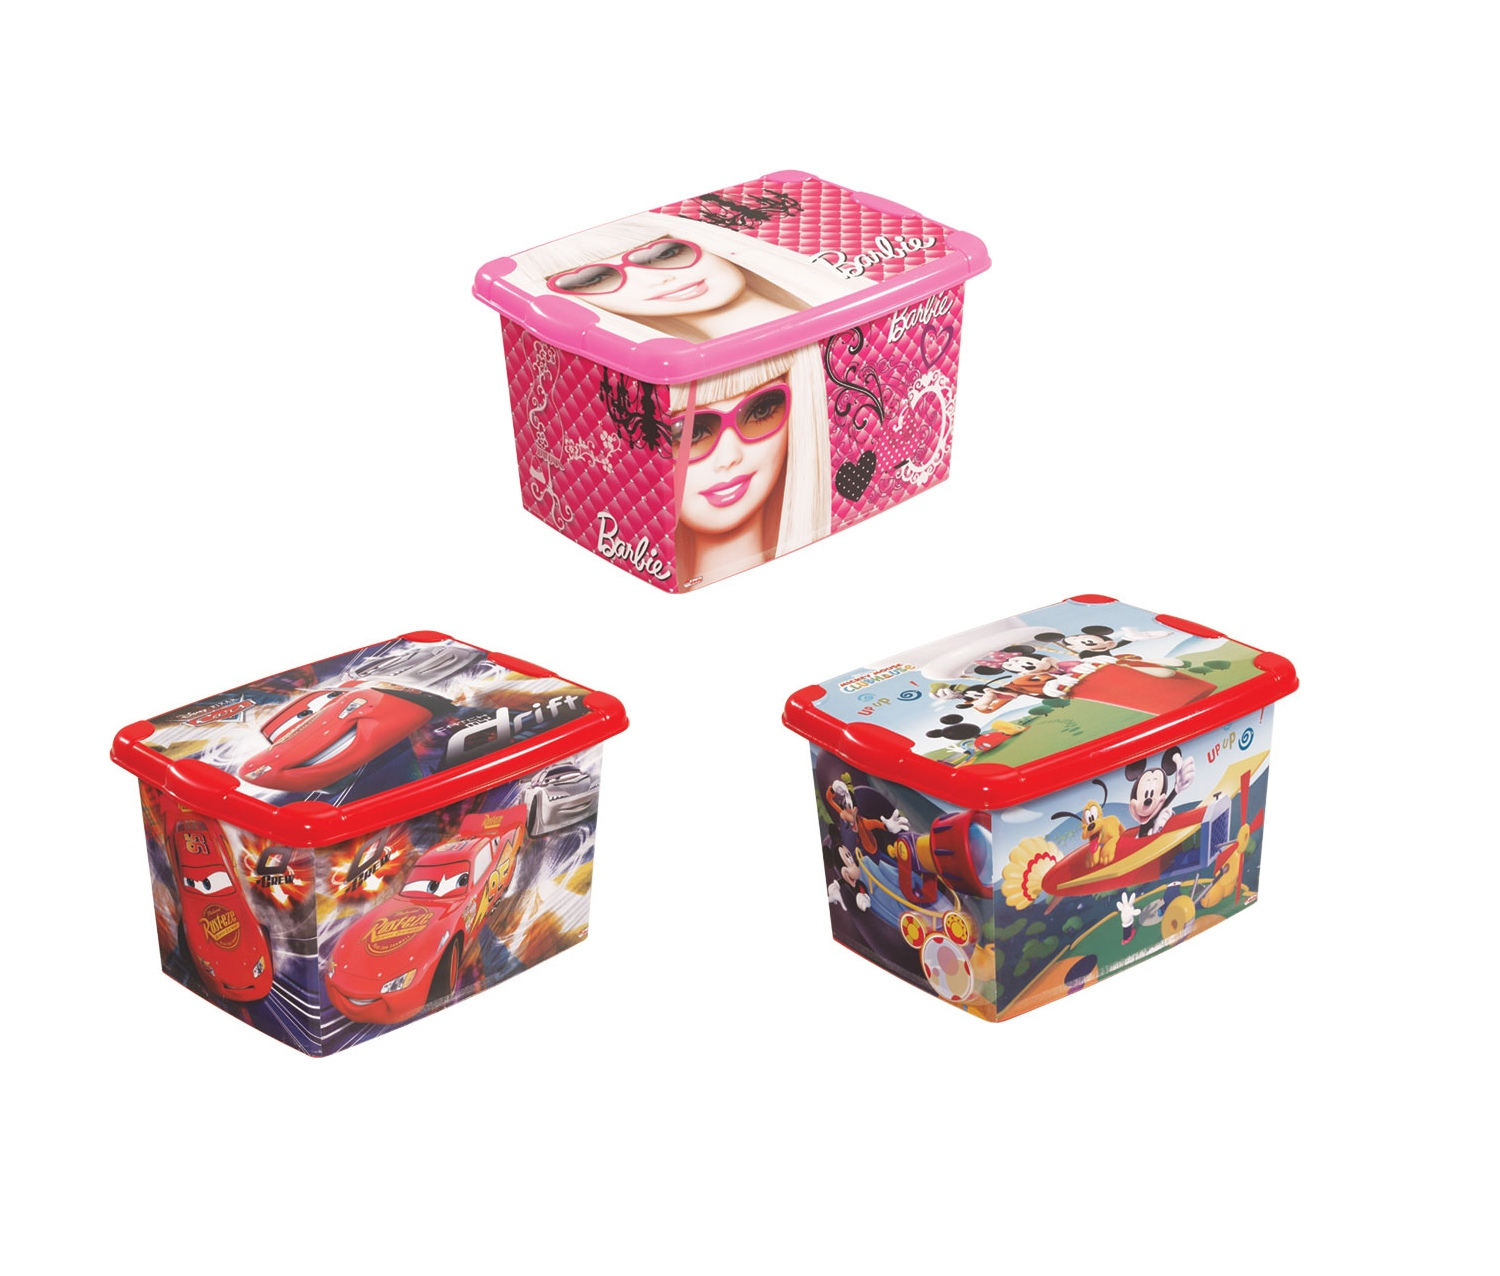 Toy Organizers: Toy organizers are slightly different from toy boxes but serve the same purpose for kids' storage. Rather than a standard toy box that opens from the top, organizers usually take the place of boxes or bins on shelves.